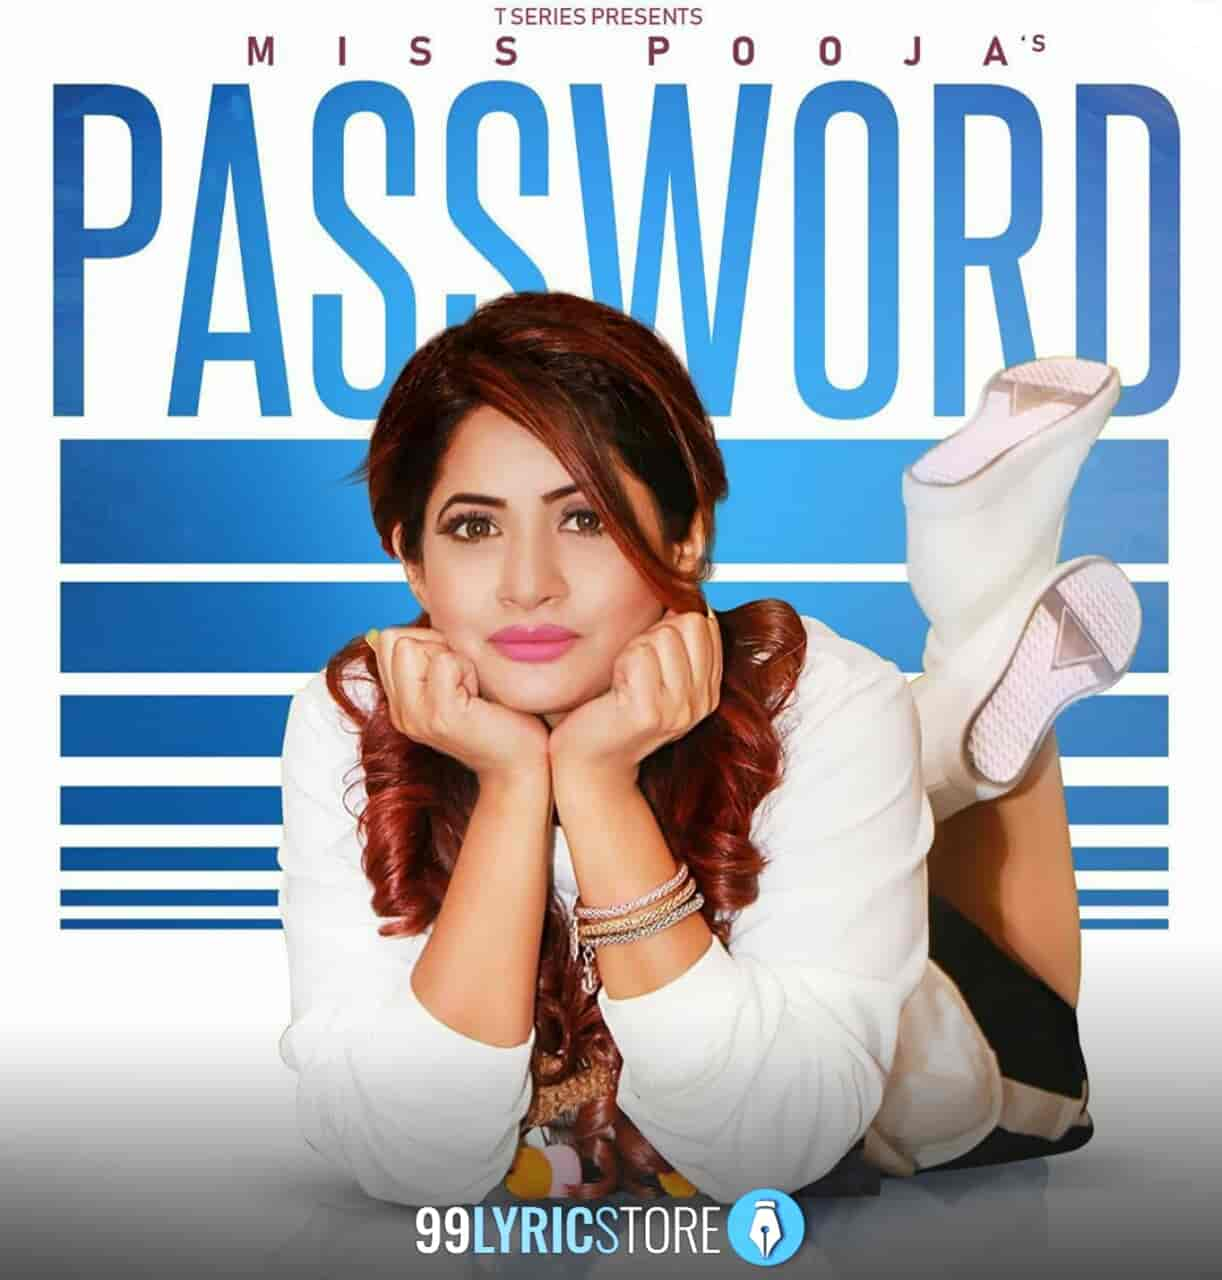 Password Punjabi song sung by Miss Pooja